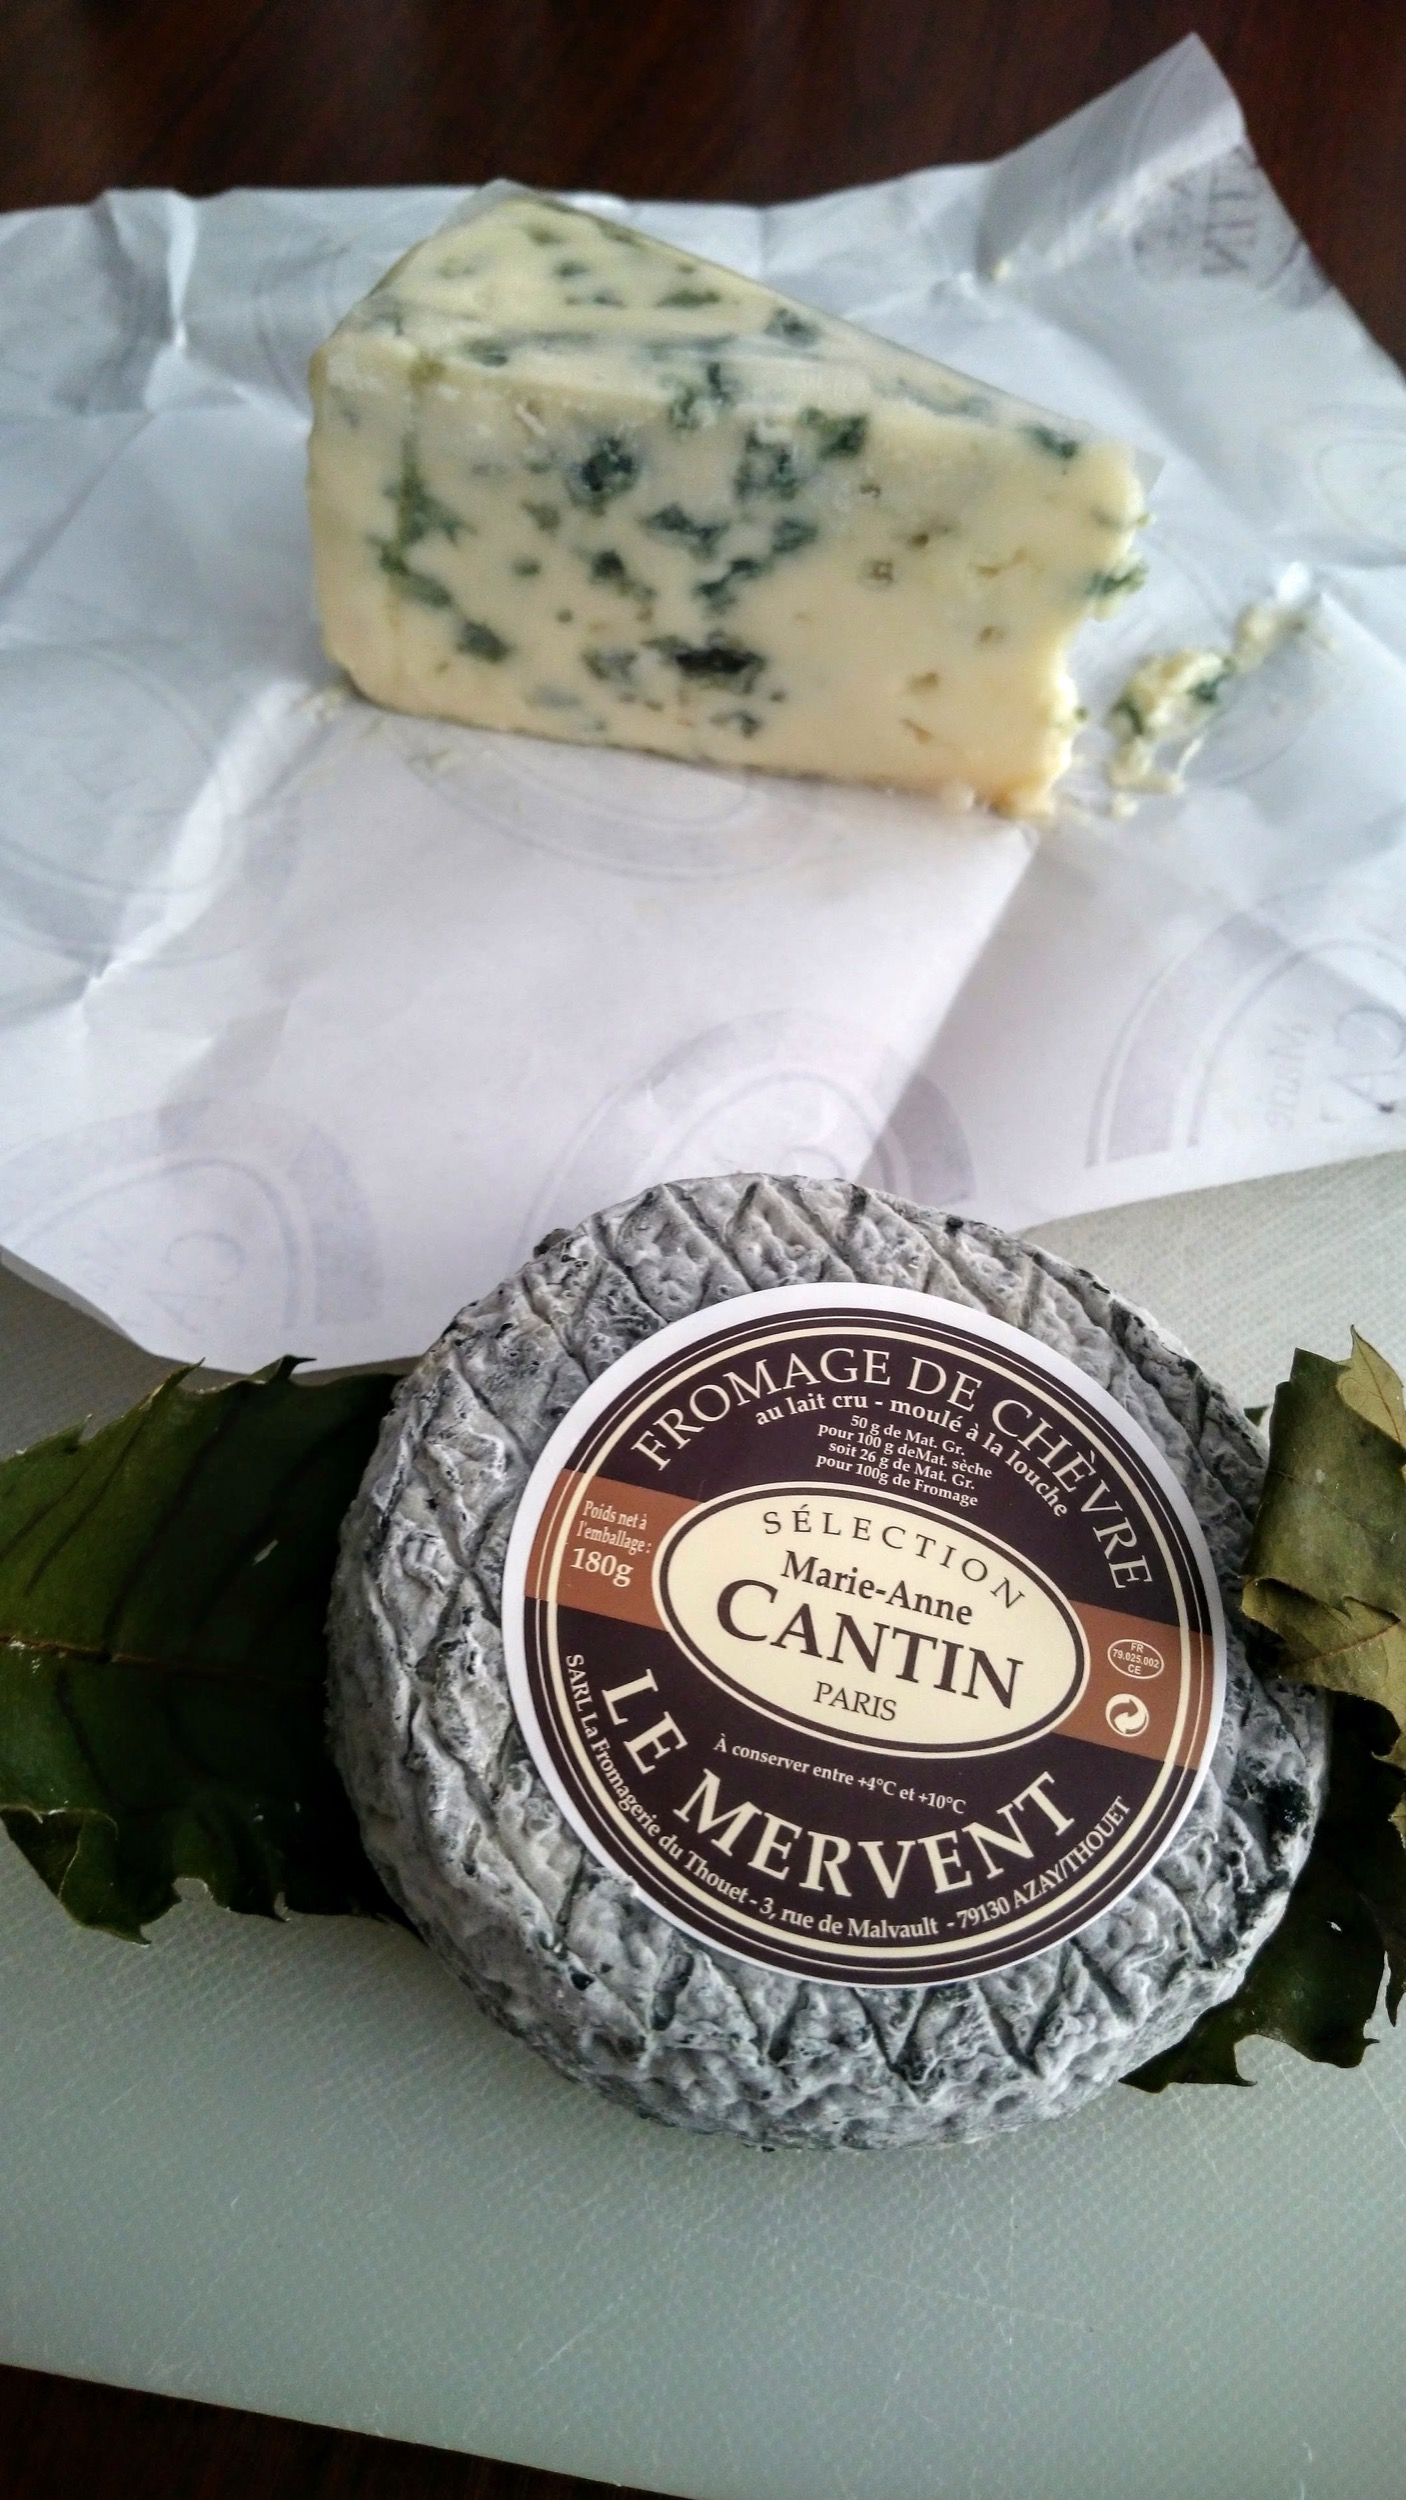 The blue cheese wasn't aggressive at all. The Mervent, a goat's cheese, was just as I like it.